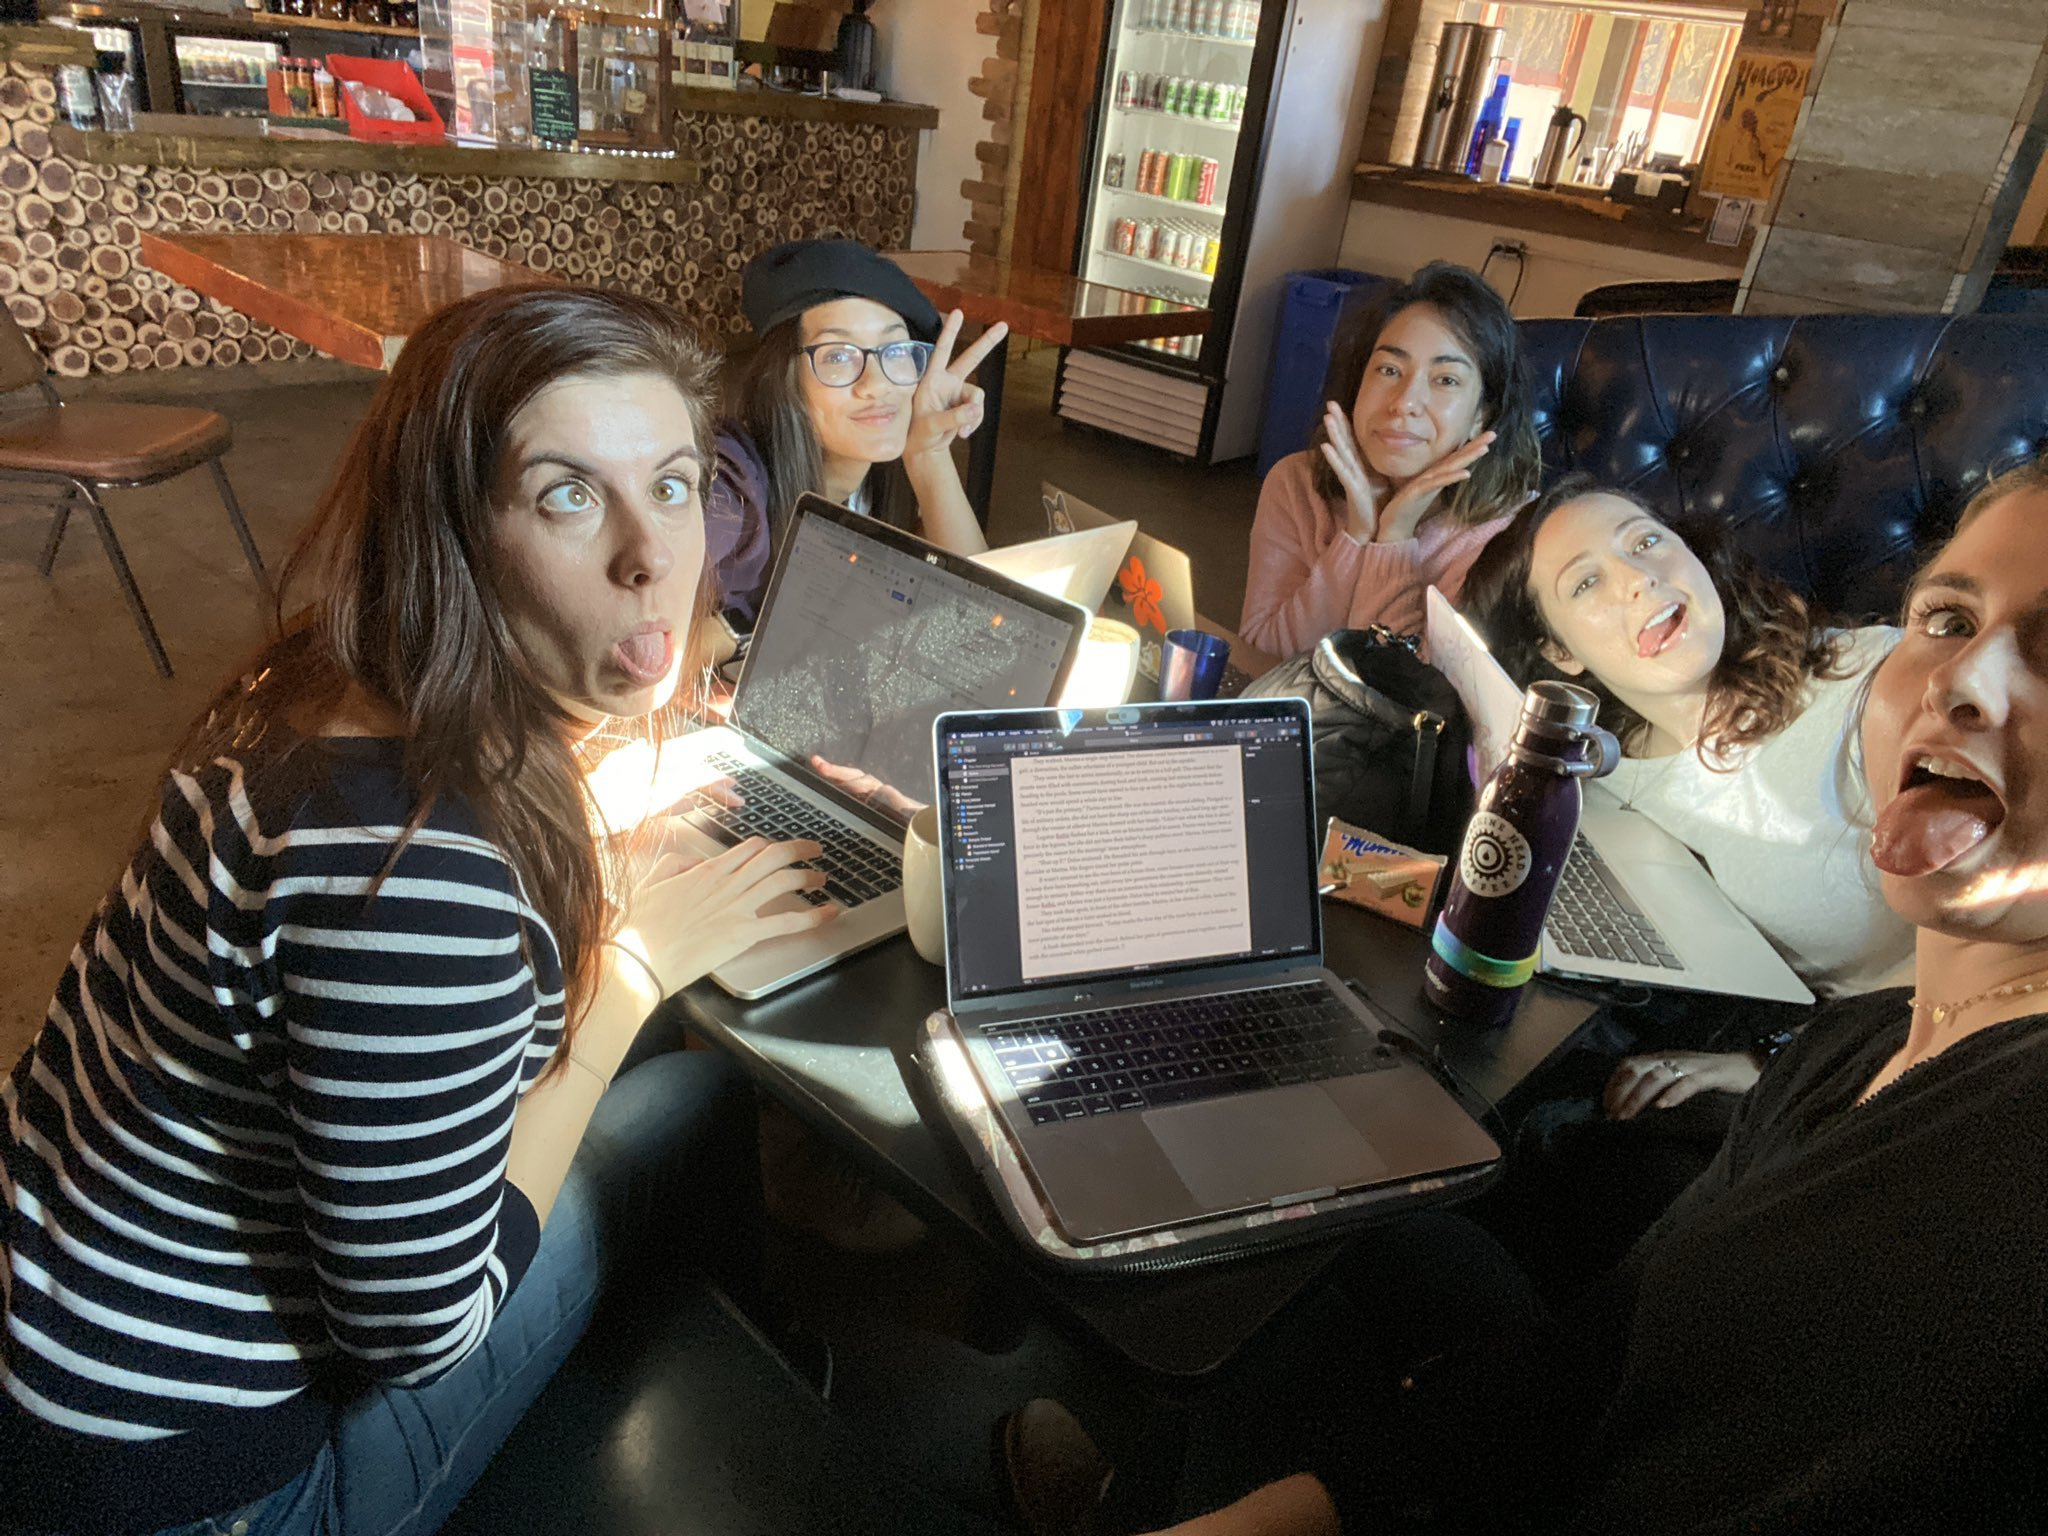 Photo taken pre-COVID of five women at a table in a coffee shop making faces at the camera. Three of the women are sticking out their tongues, the fourth is flashing a peace sign, and the fifth is resting her chin in her hands. Their laptops are in front of them on the table, open to writing projects. They are, left to right: Carol, Brighton, Andy, Melody, and Annemarie.